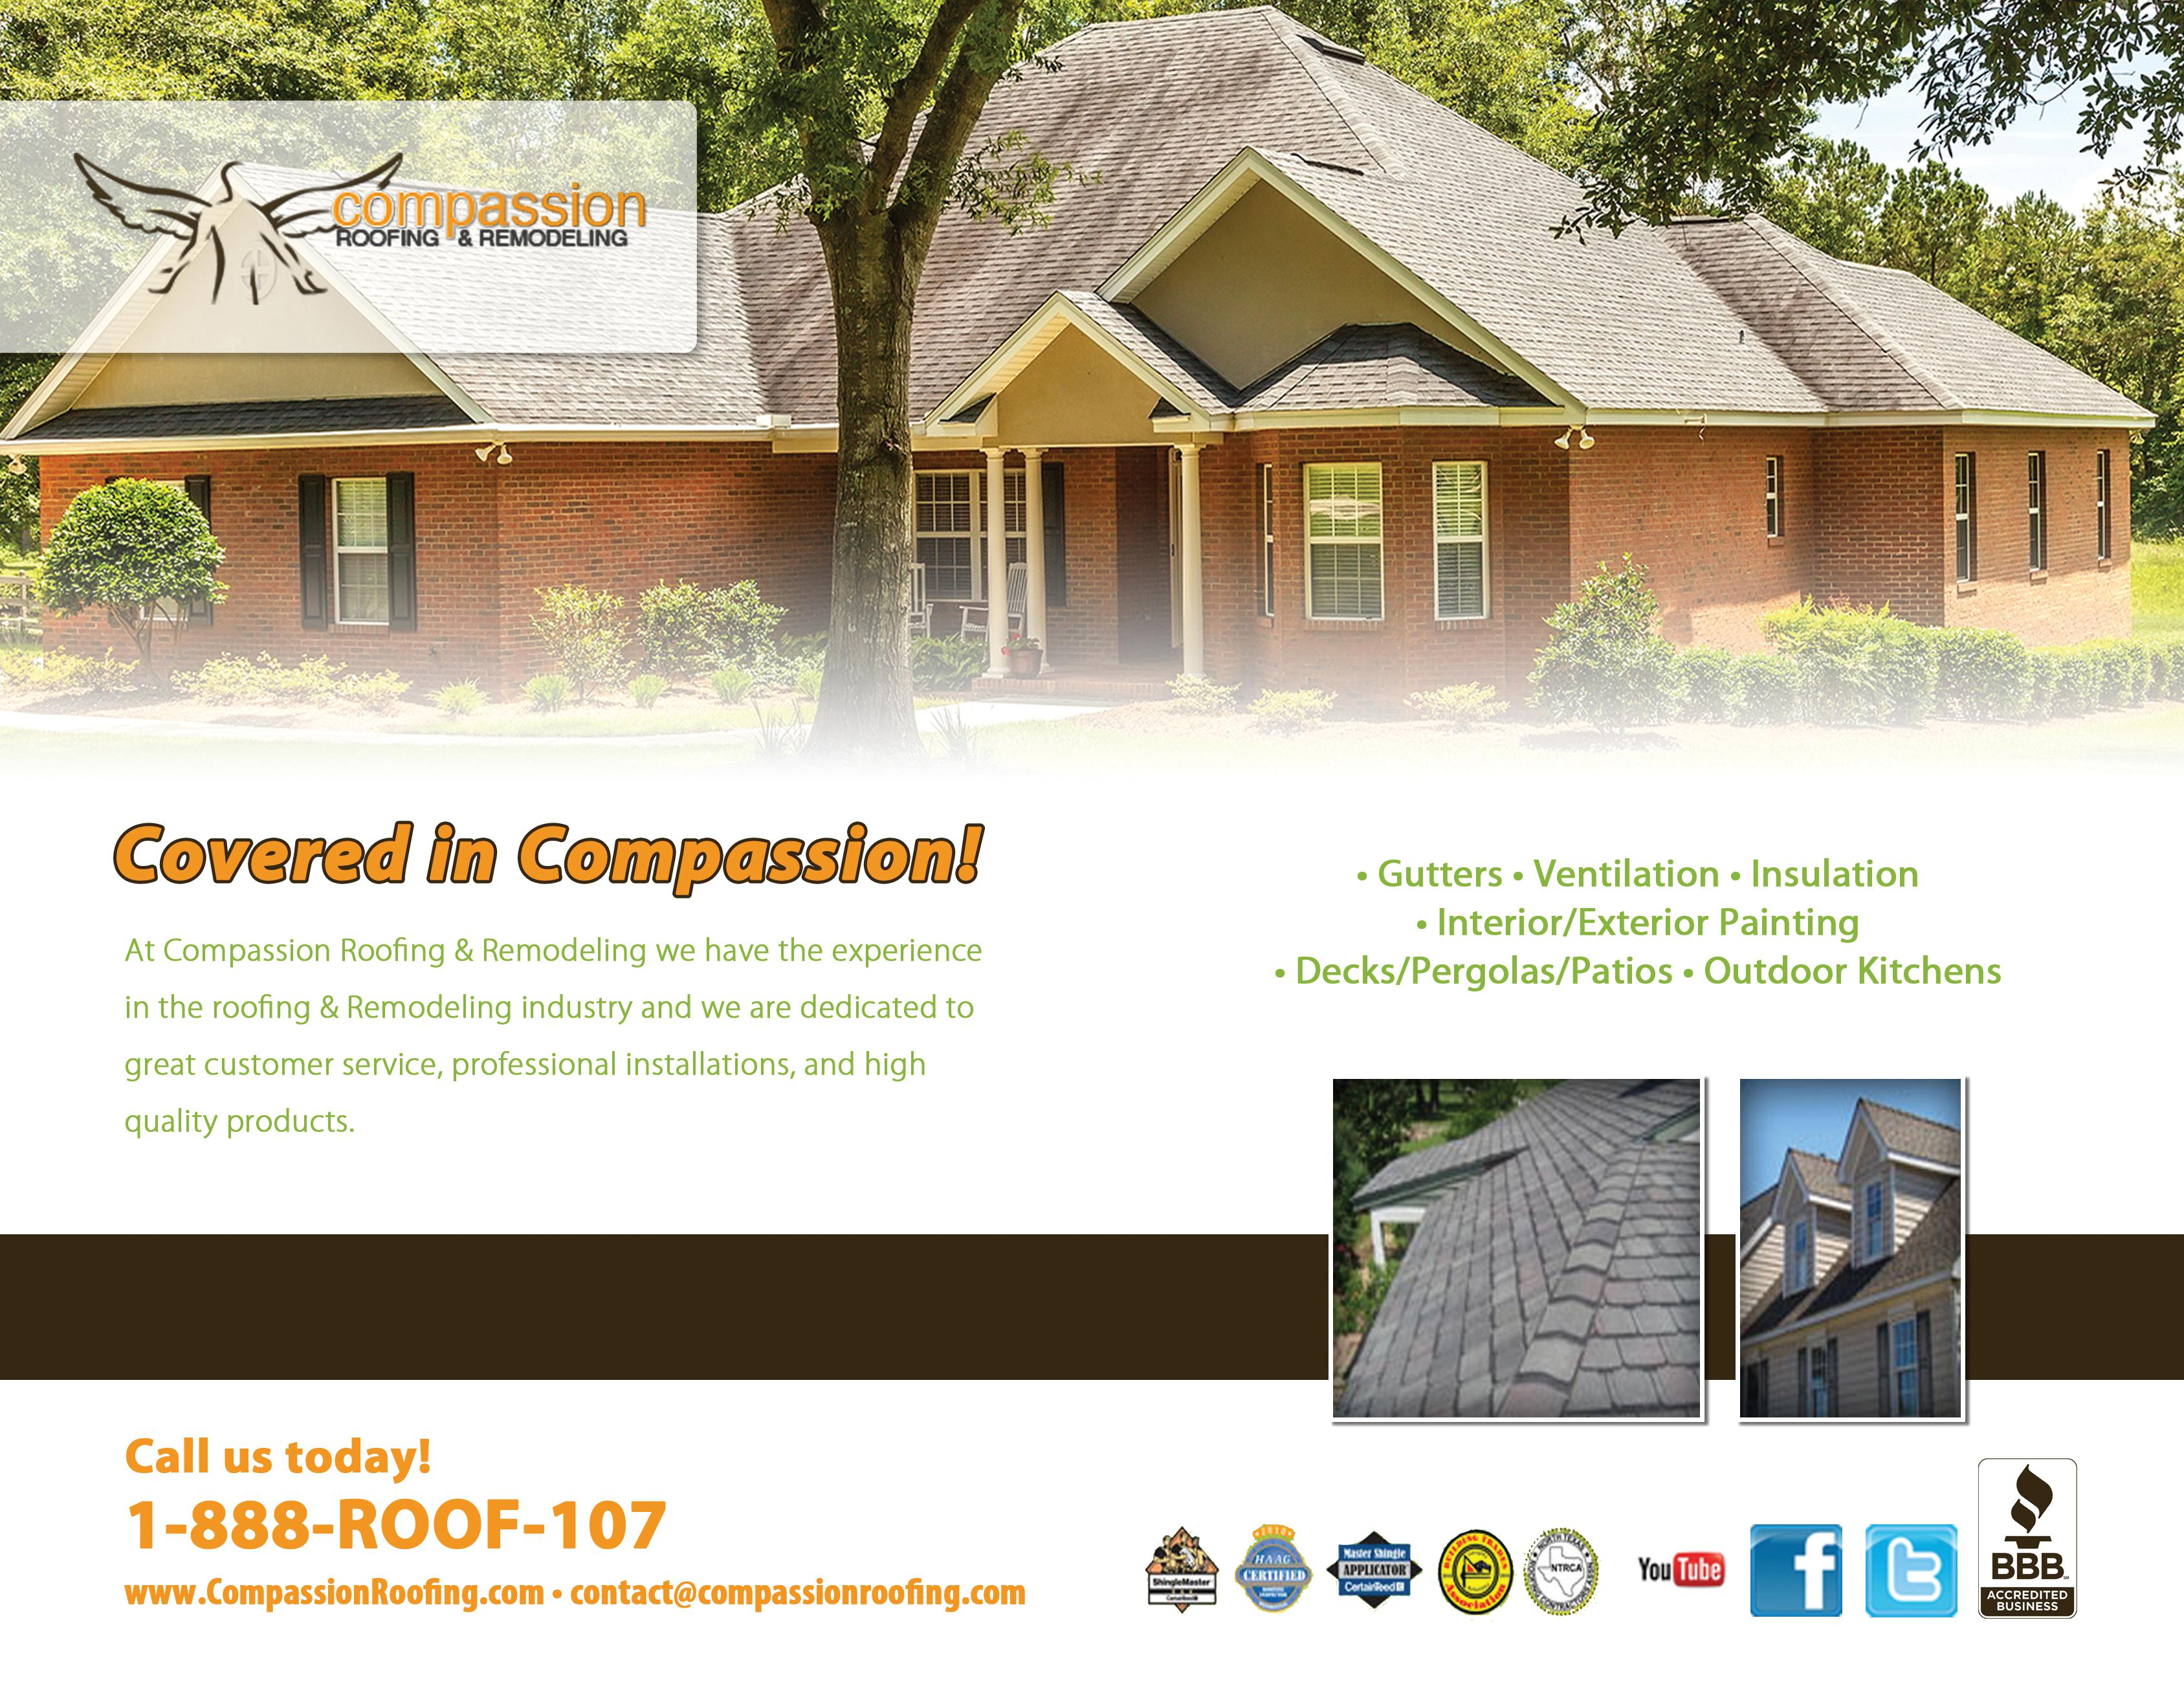 Compassion Roofing & Remodeling